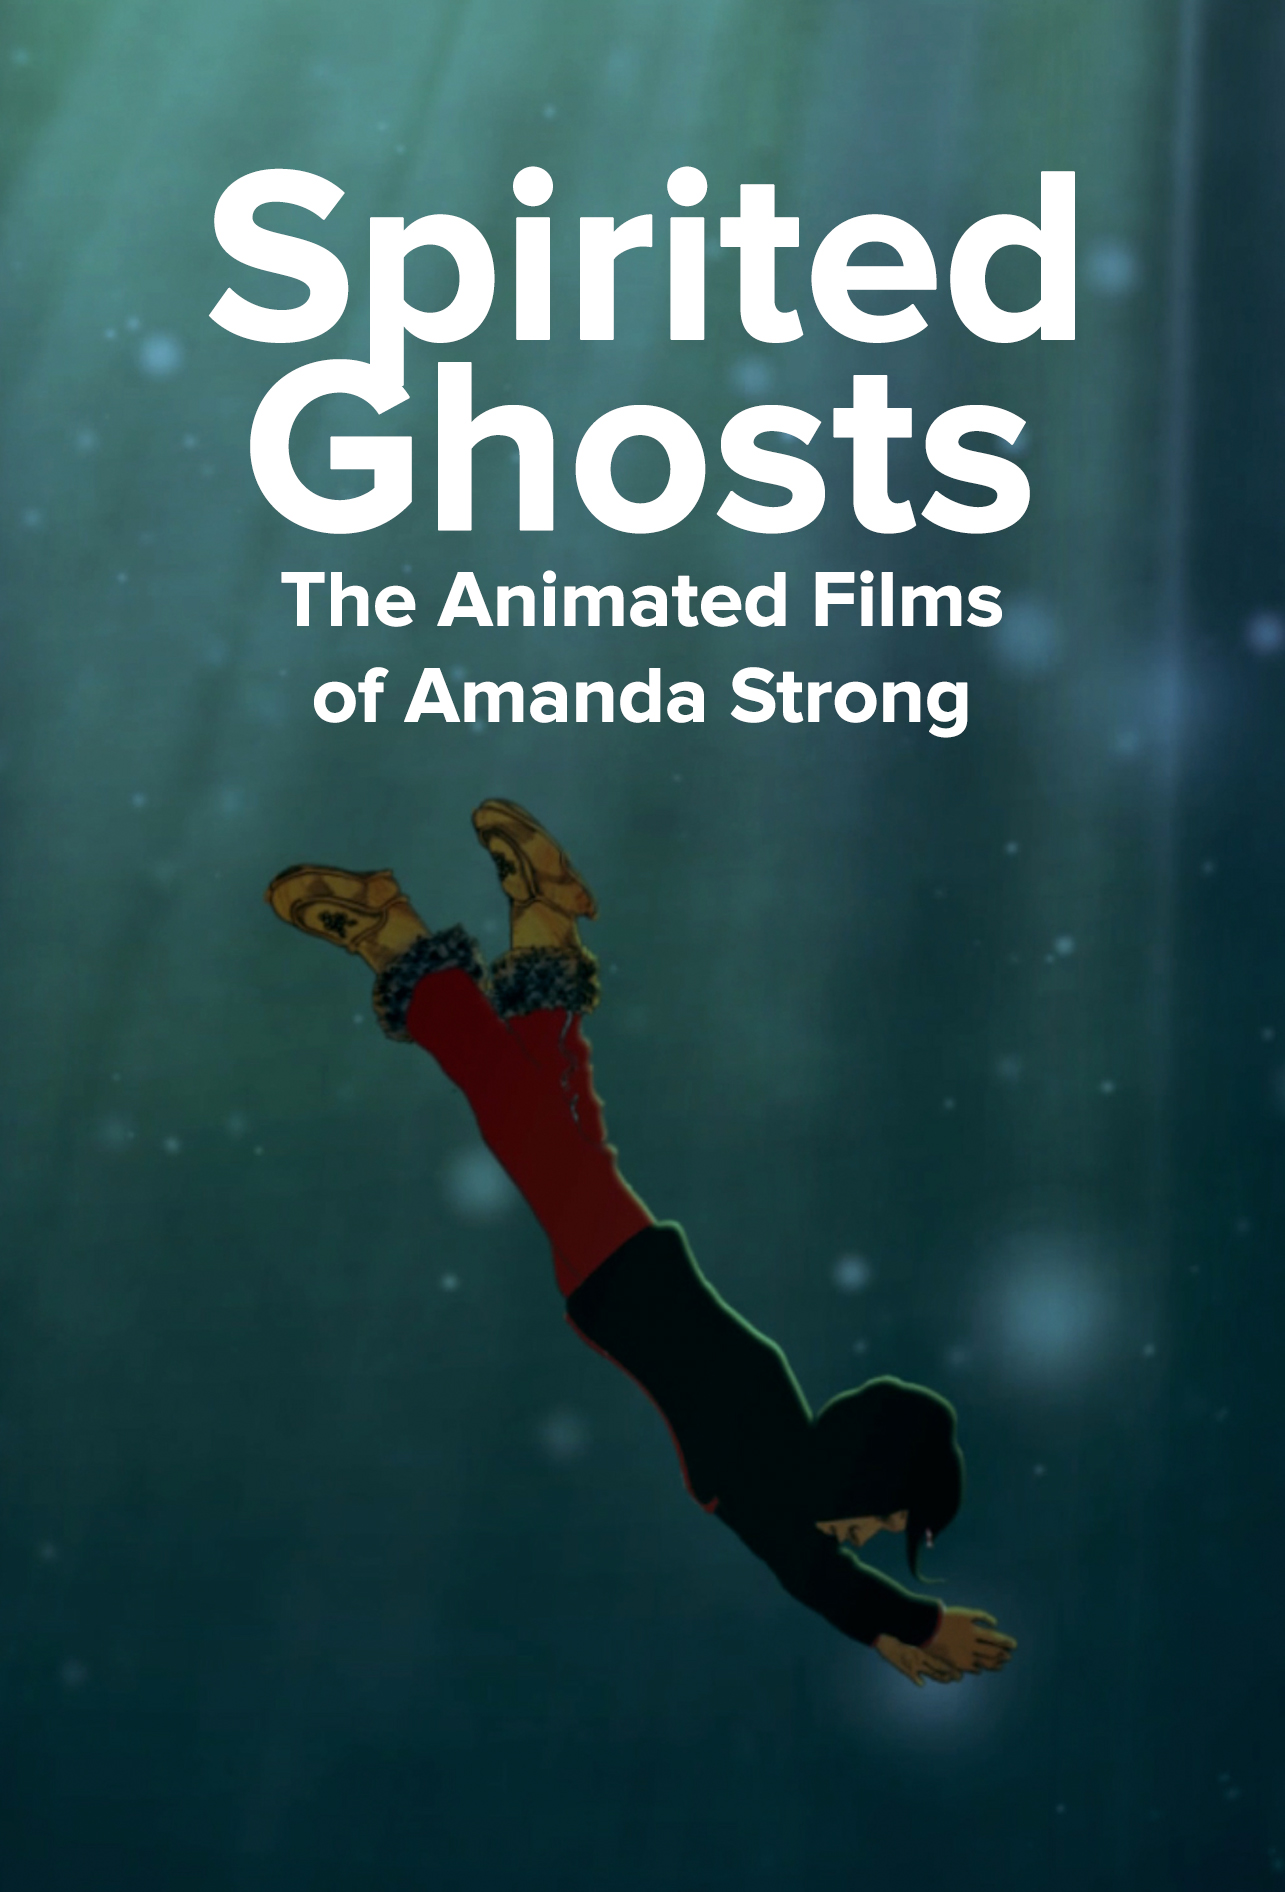 Spirited Ghosts: The Animated Films of Amanda Strong (Free Screening!)